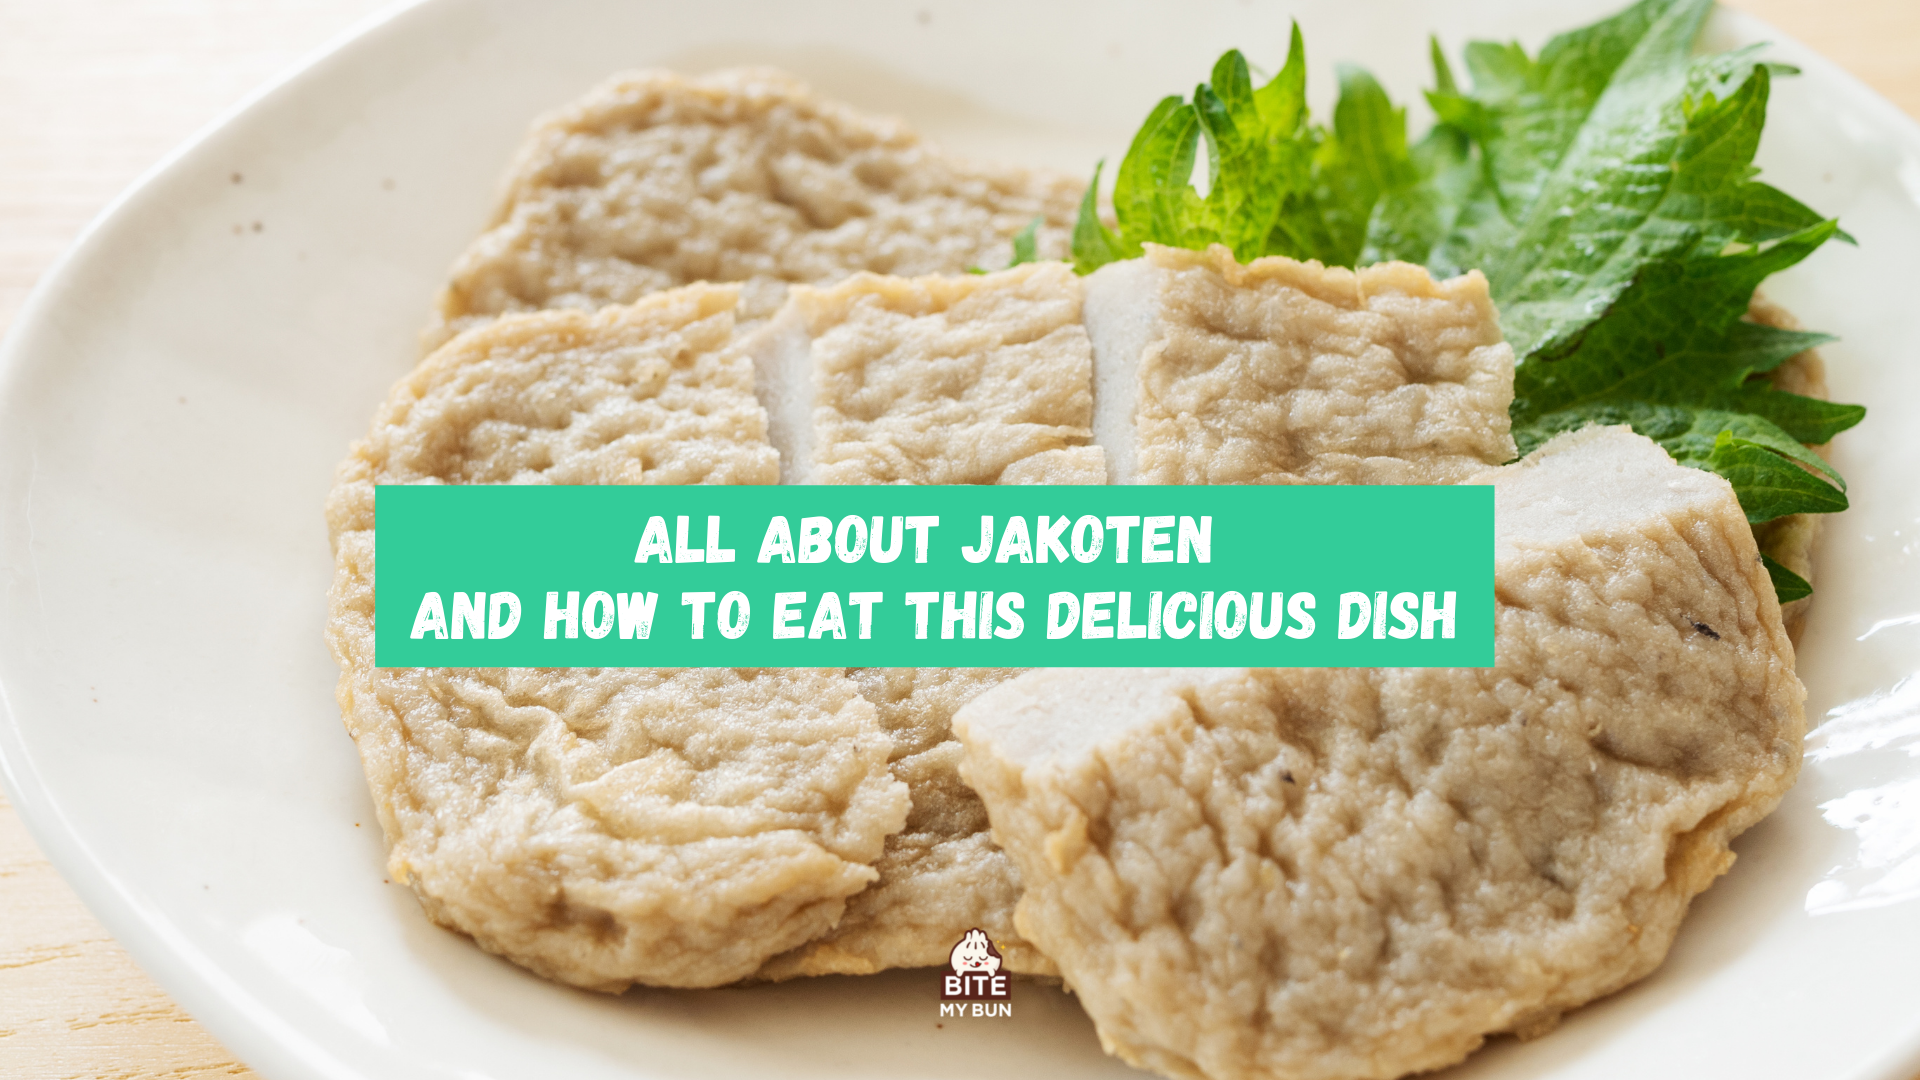 All about jakoten and how to eat this delicious dish